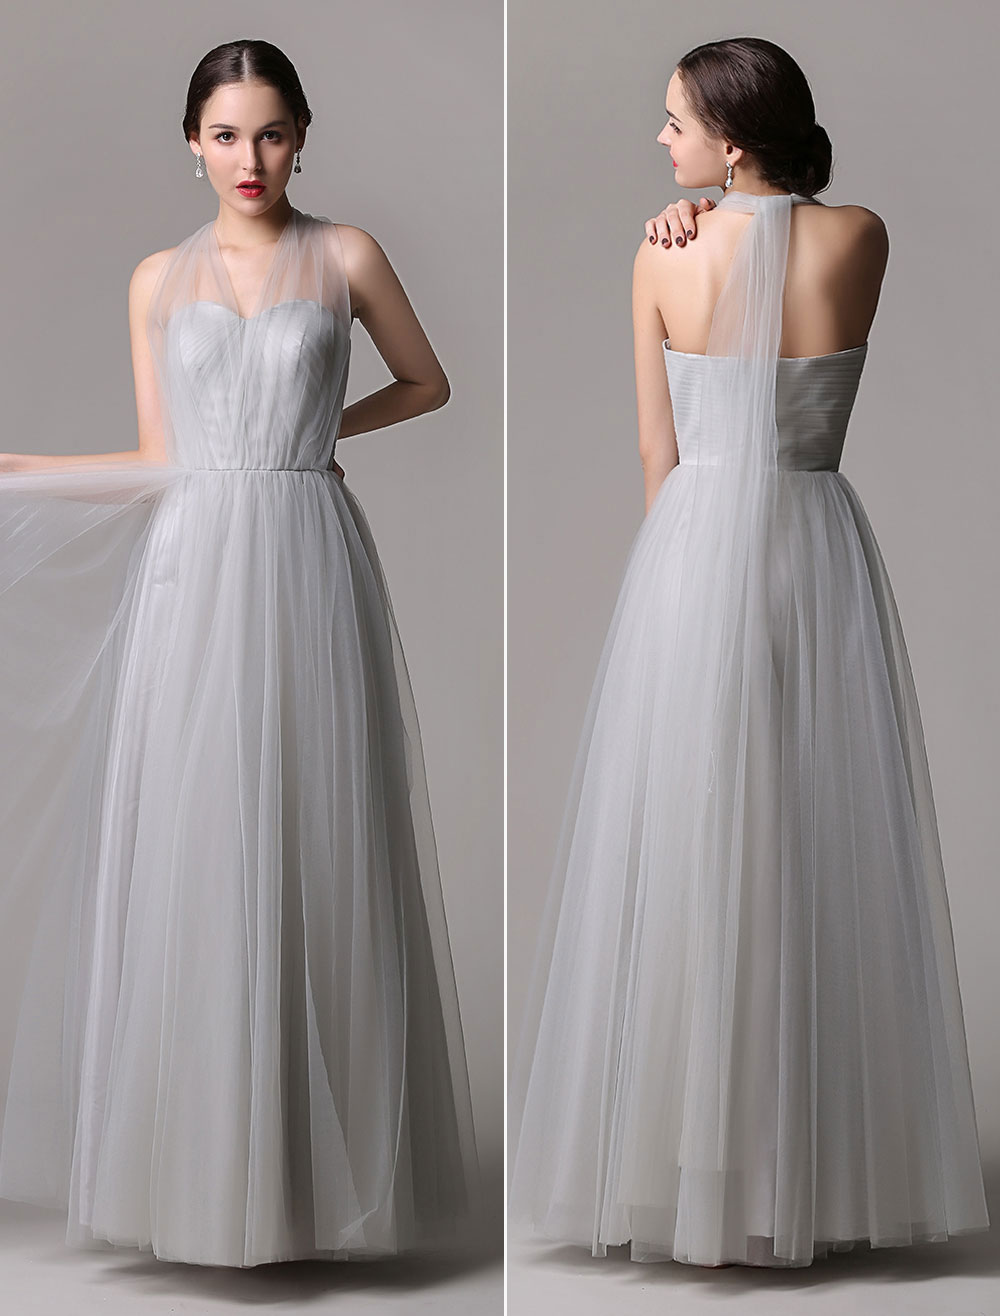 Tulle A-Line Floor-Length Convertible Bridesmaid Dress